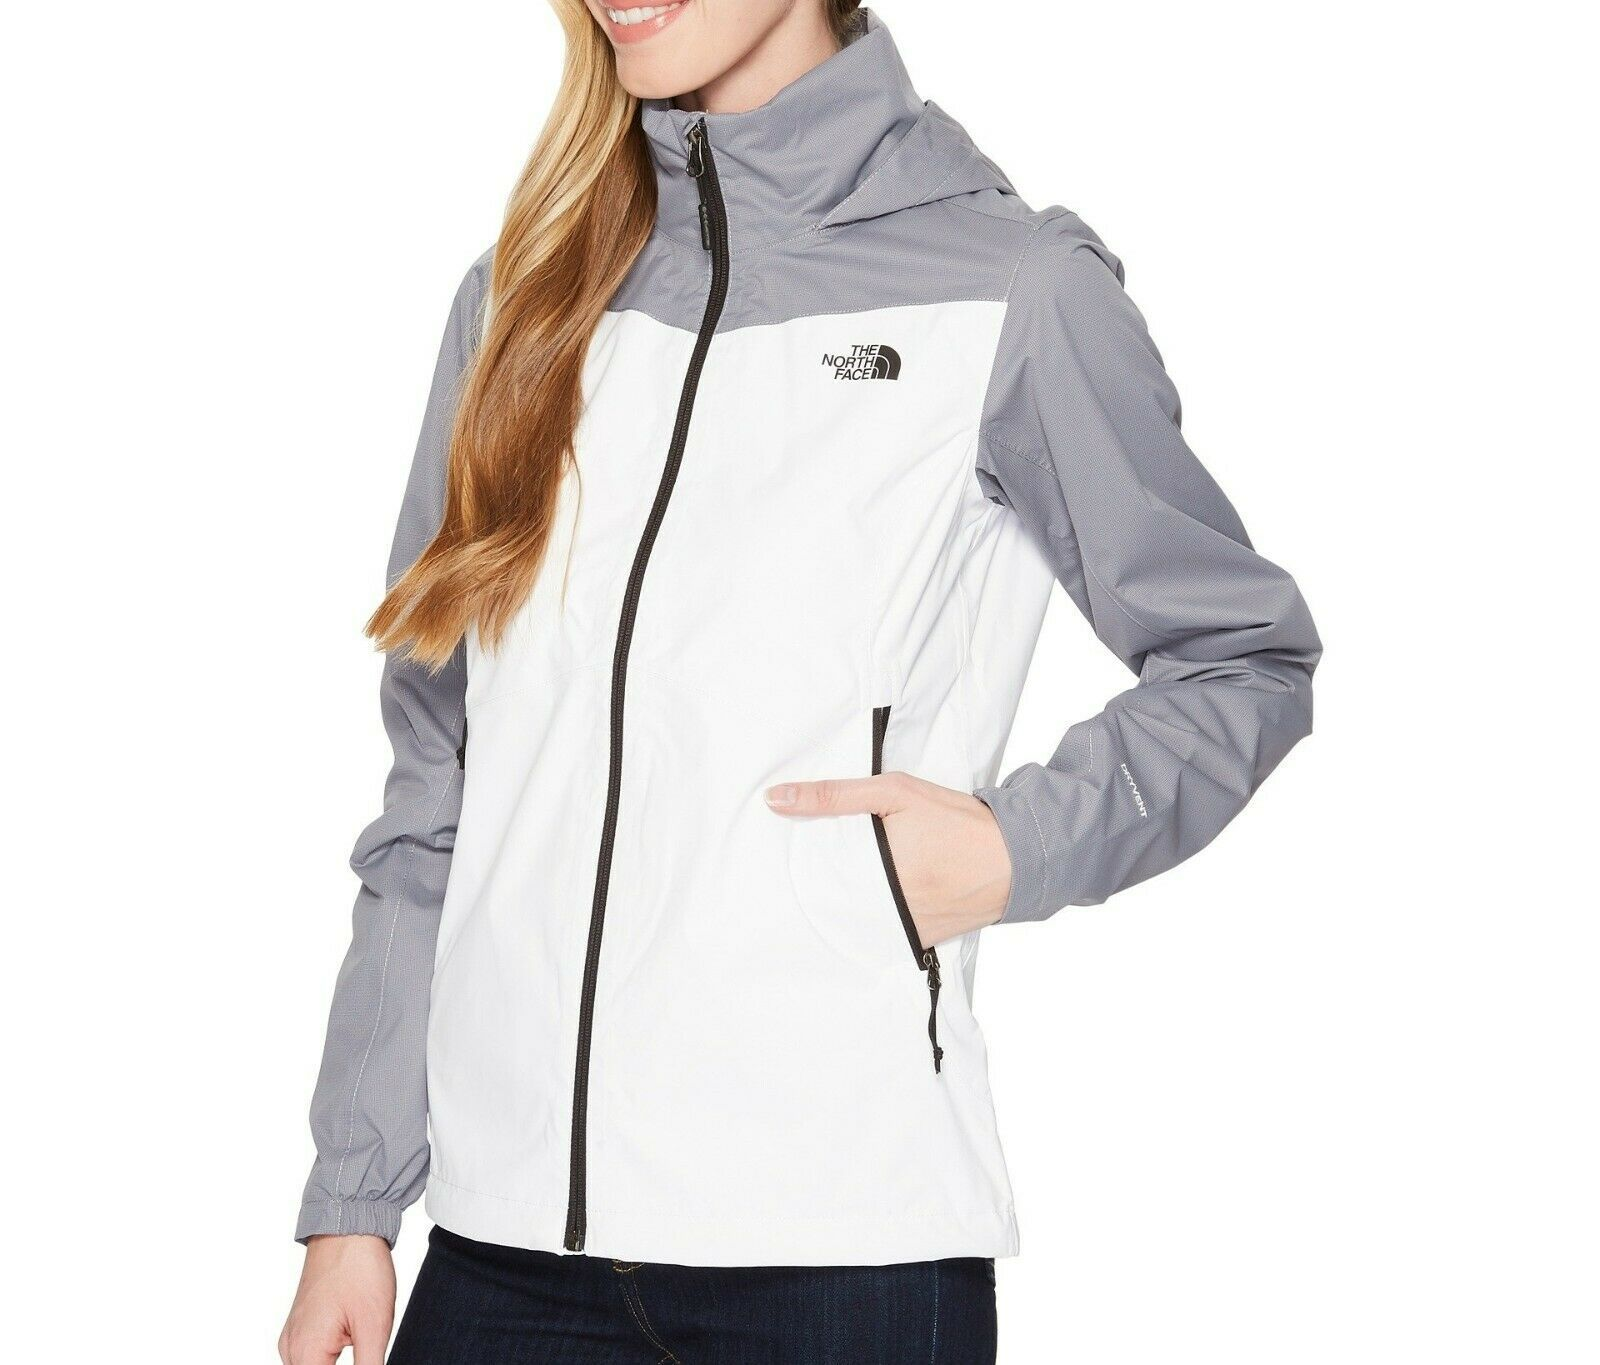 NWT THE NORTH FACE WOMEN/'S RESOLVE PLUS JACKET TNF WHITE MID GREY DOBBY